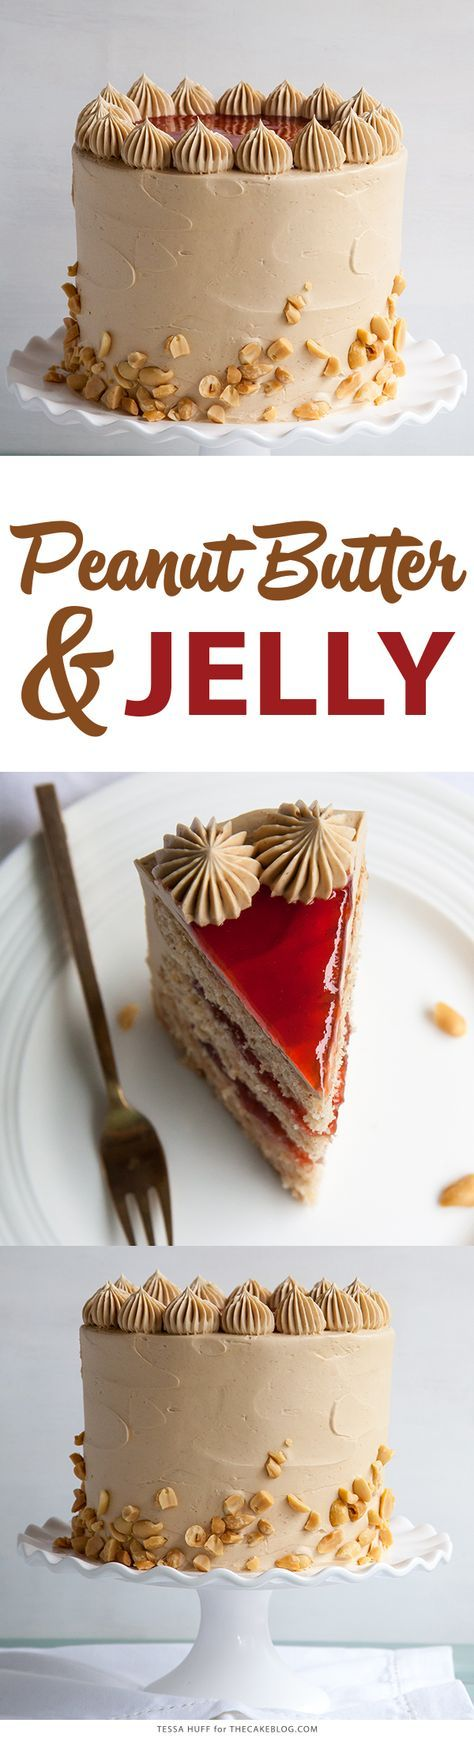 Peanut Butter & Jelly Cake | peanut butter cake with brown sugar peanut butter frosting, strawberry jam and chopped peanuts | by Tessa Huff for http://TheCakeBlog.com